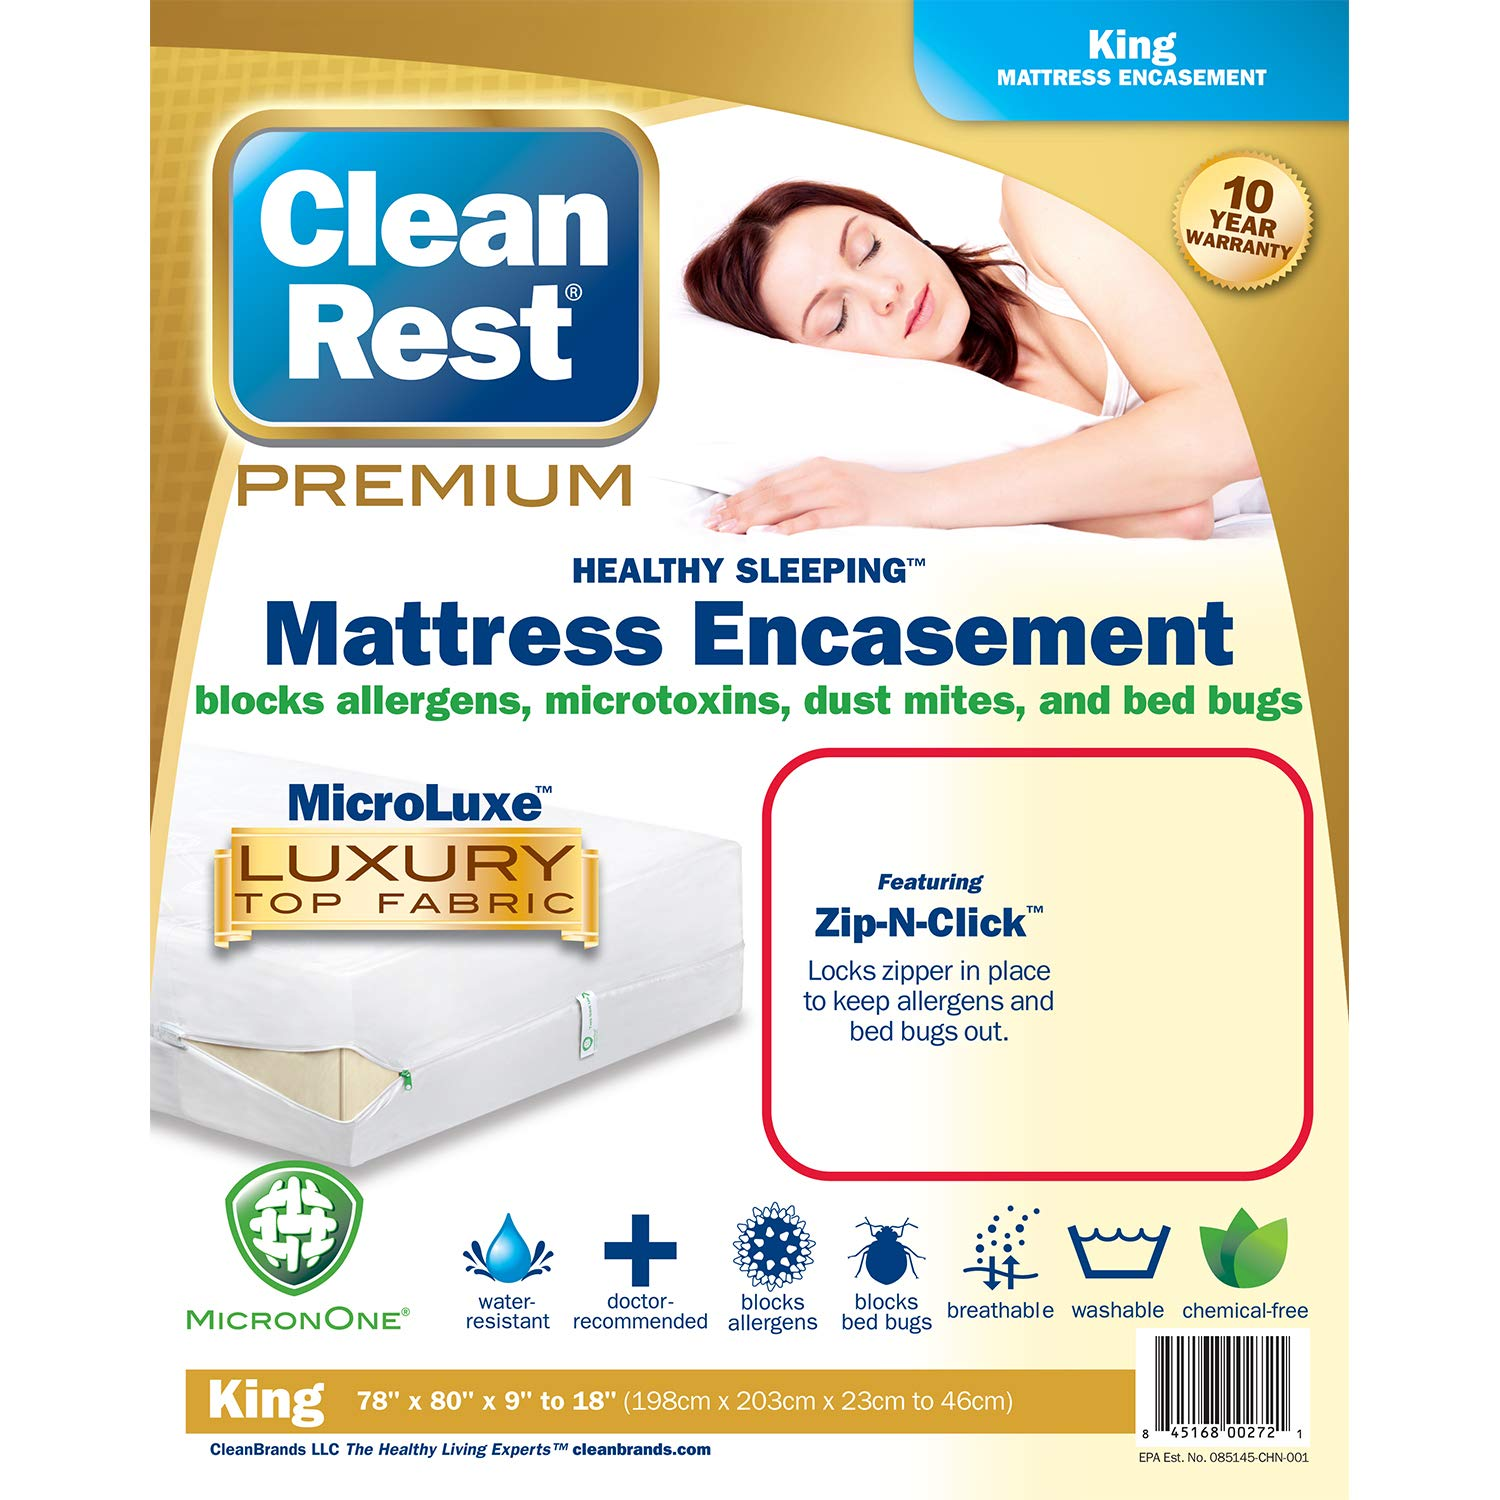 Clean Rest Premium Water-Resistant, Allergy and Bed Bug Blocking Mattress Encasement, King